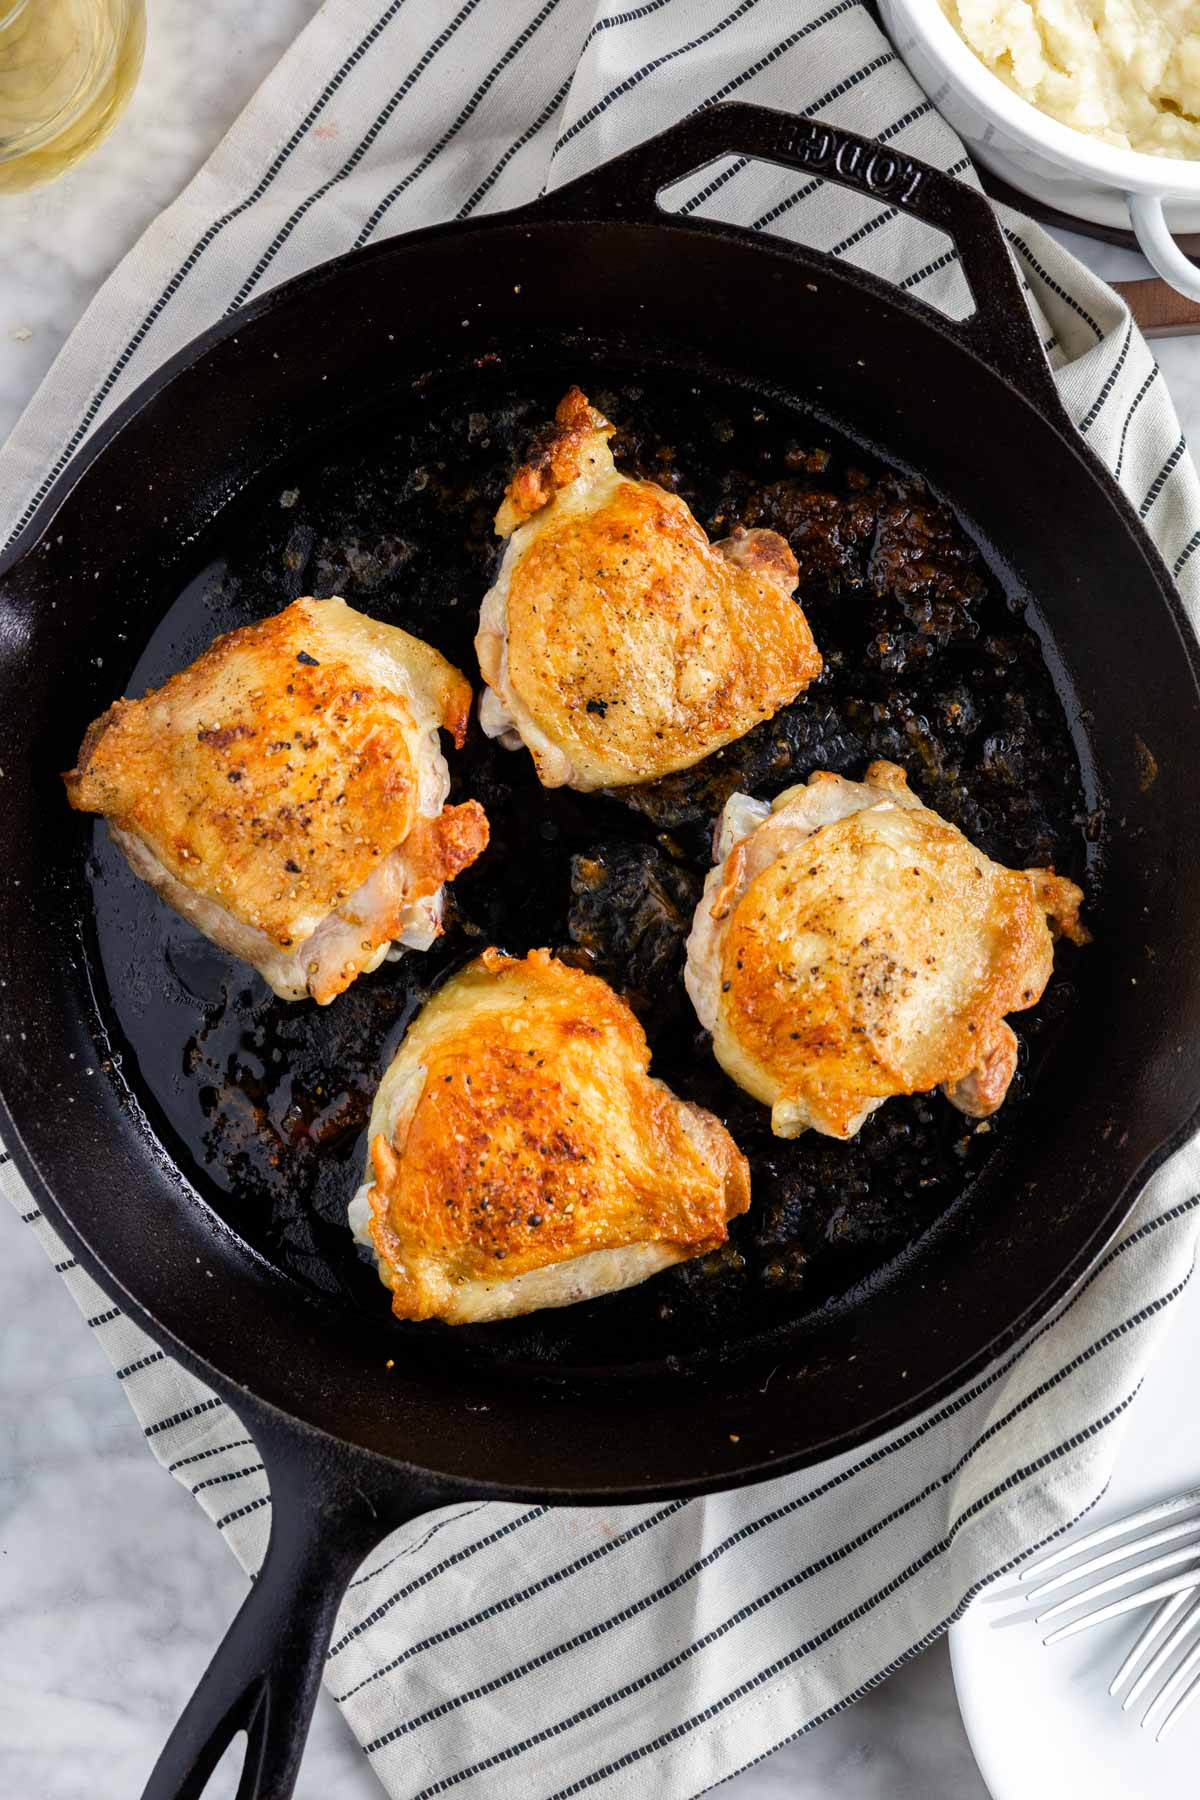 A cast iron skillet with four crispy chicken thighs with golden brown skin after baking in the oven.